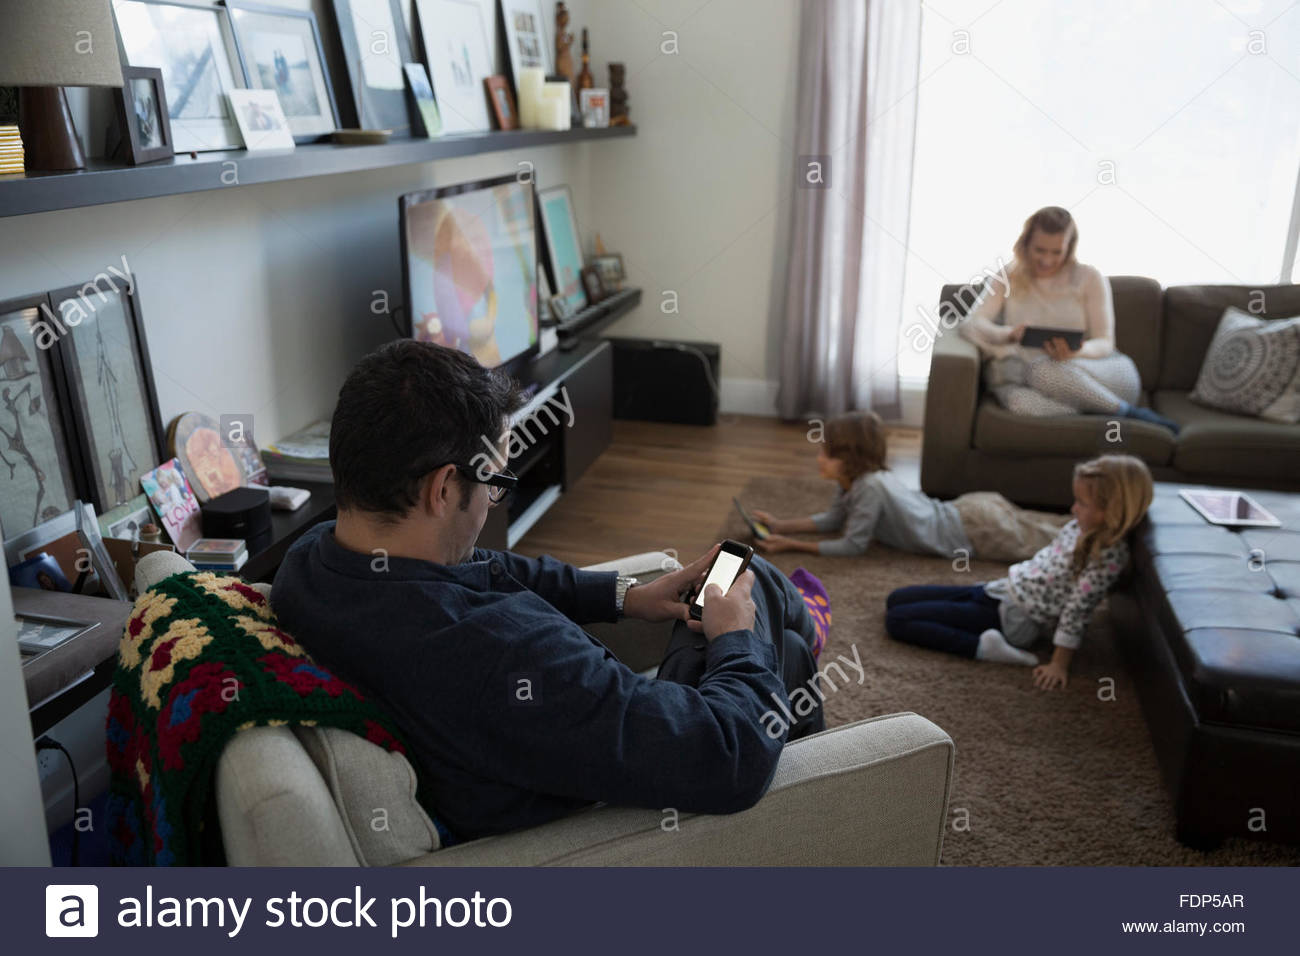 Family relaxing in living room with digital technology - Stock Image